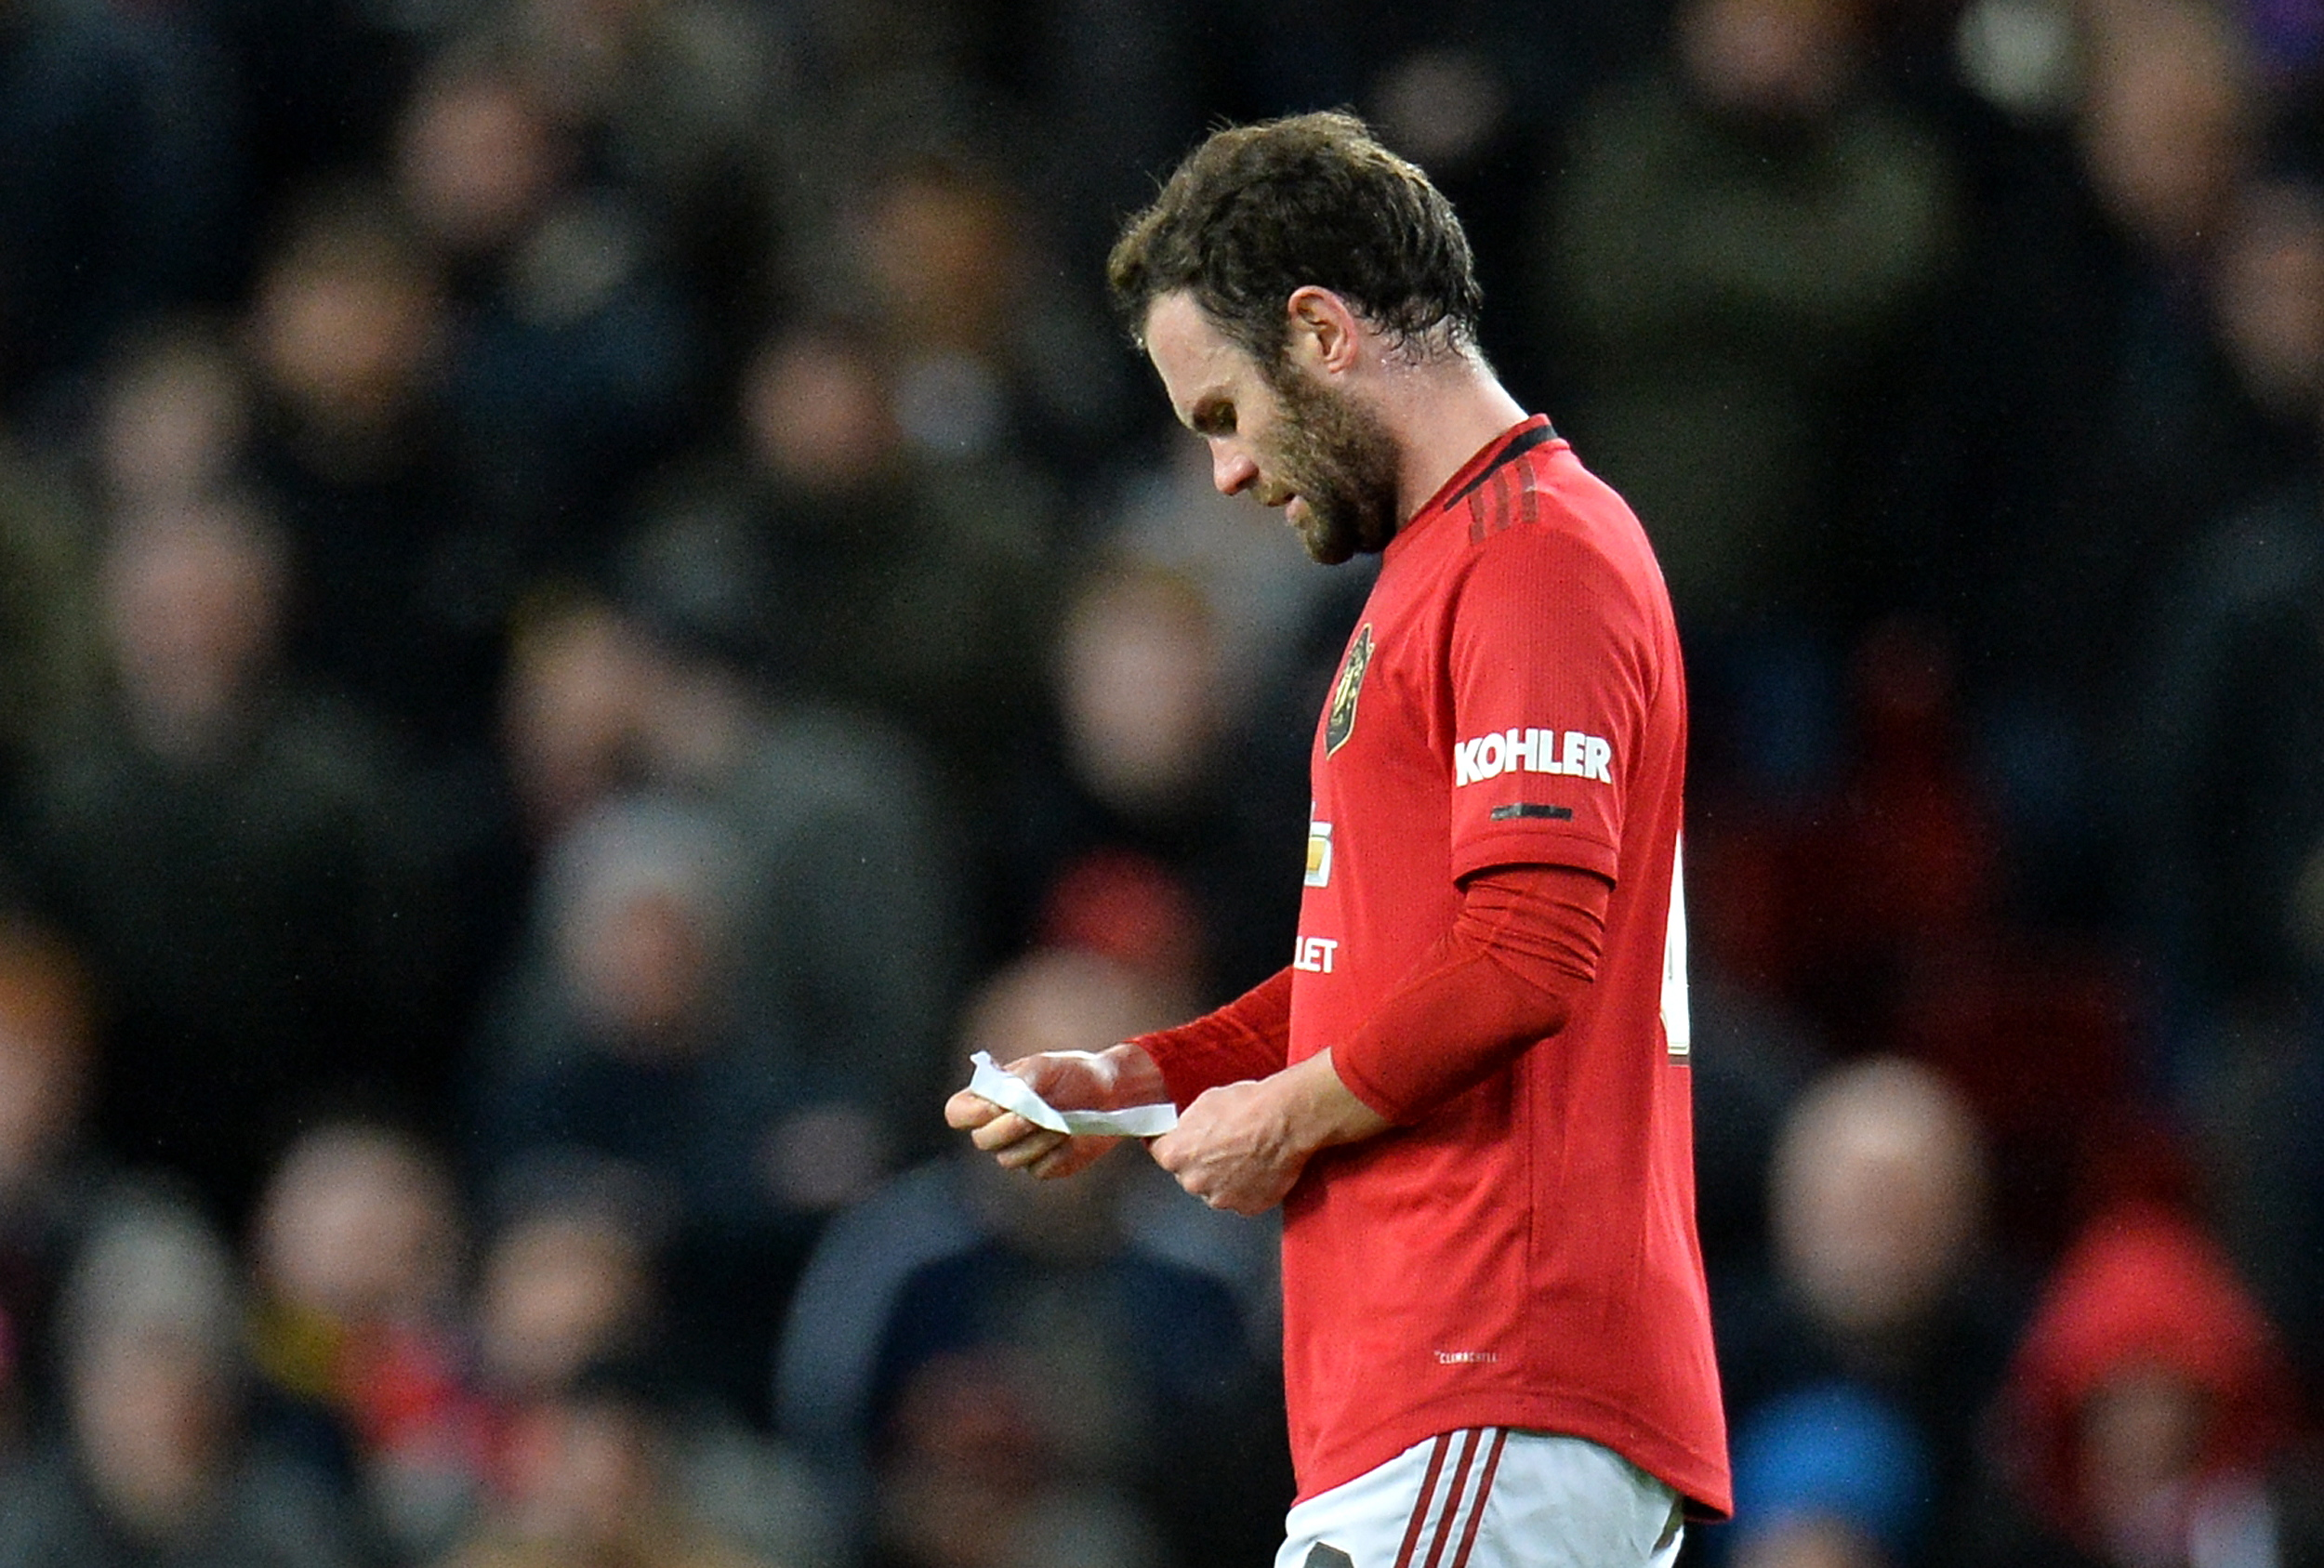 Manchester United midfielder Mata opens about his future